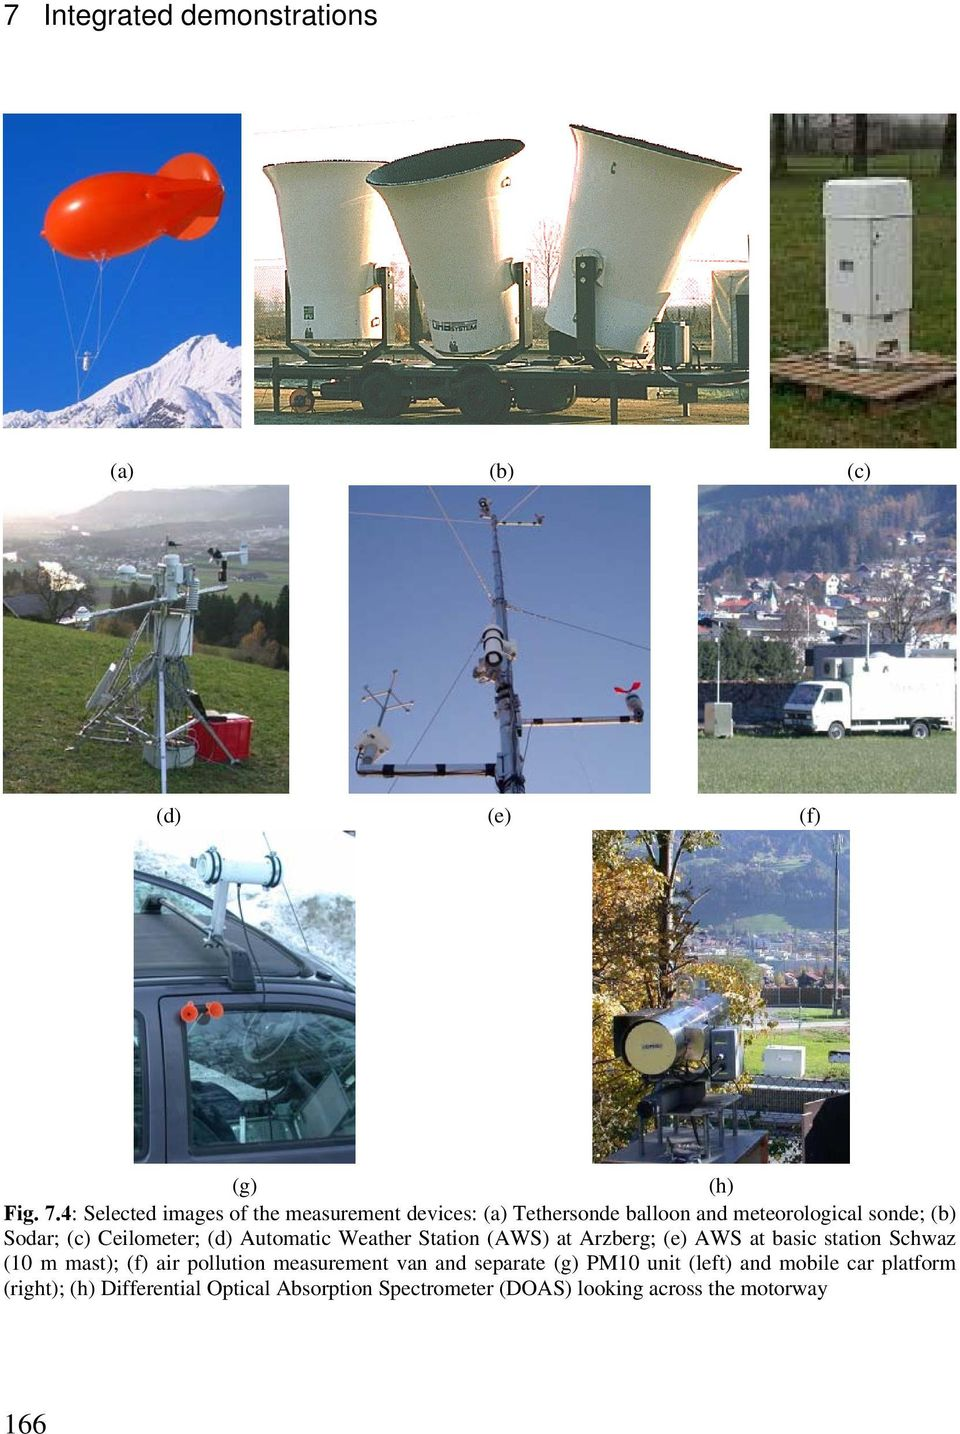 (c) Ceilometer; (d) Automatic Weather Station (AWS) at Arzberg; (e) AWS at basic station Schwaz (10 m mast);